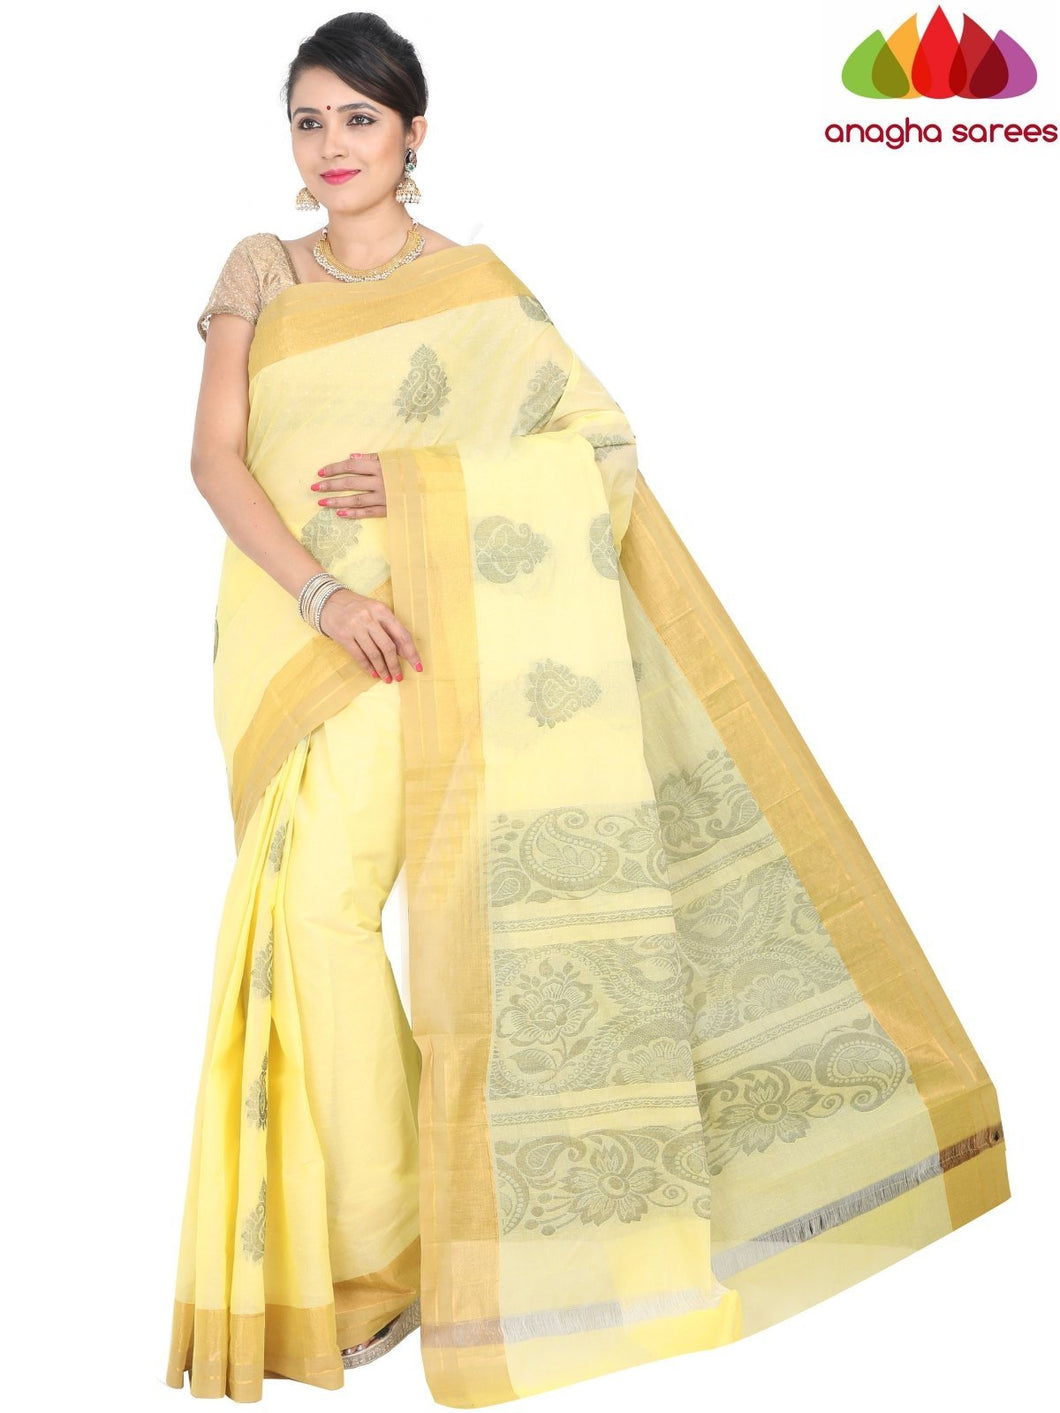 Anagha Sarees Pure Cotton standard / Lemon Yellow Handloom Rich Cotton Saree - Lemon Yellow : ANA_H30